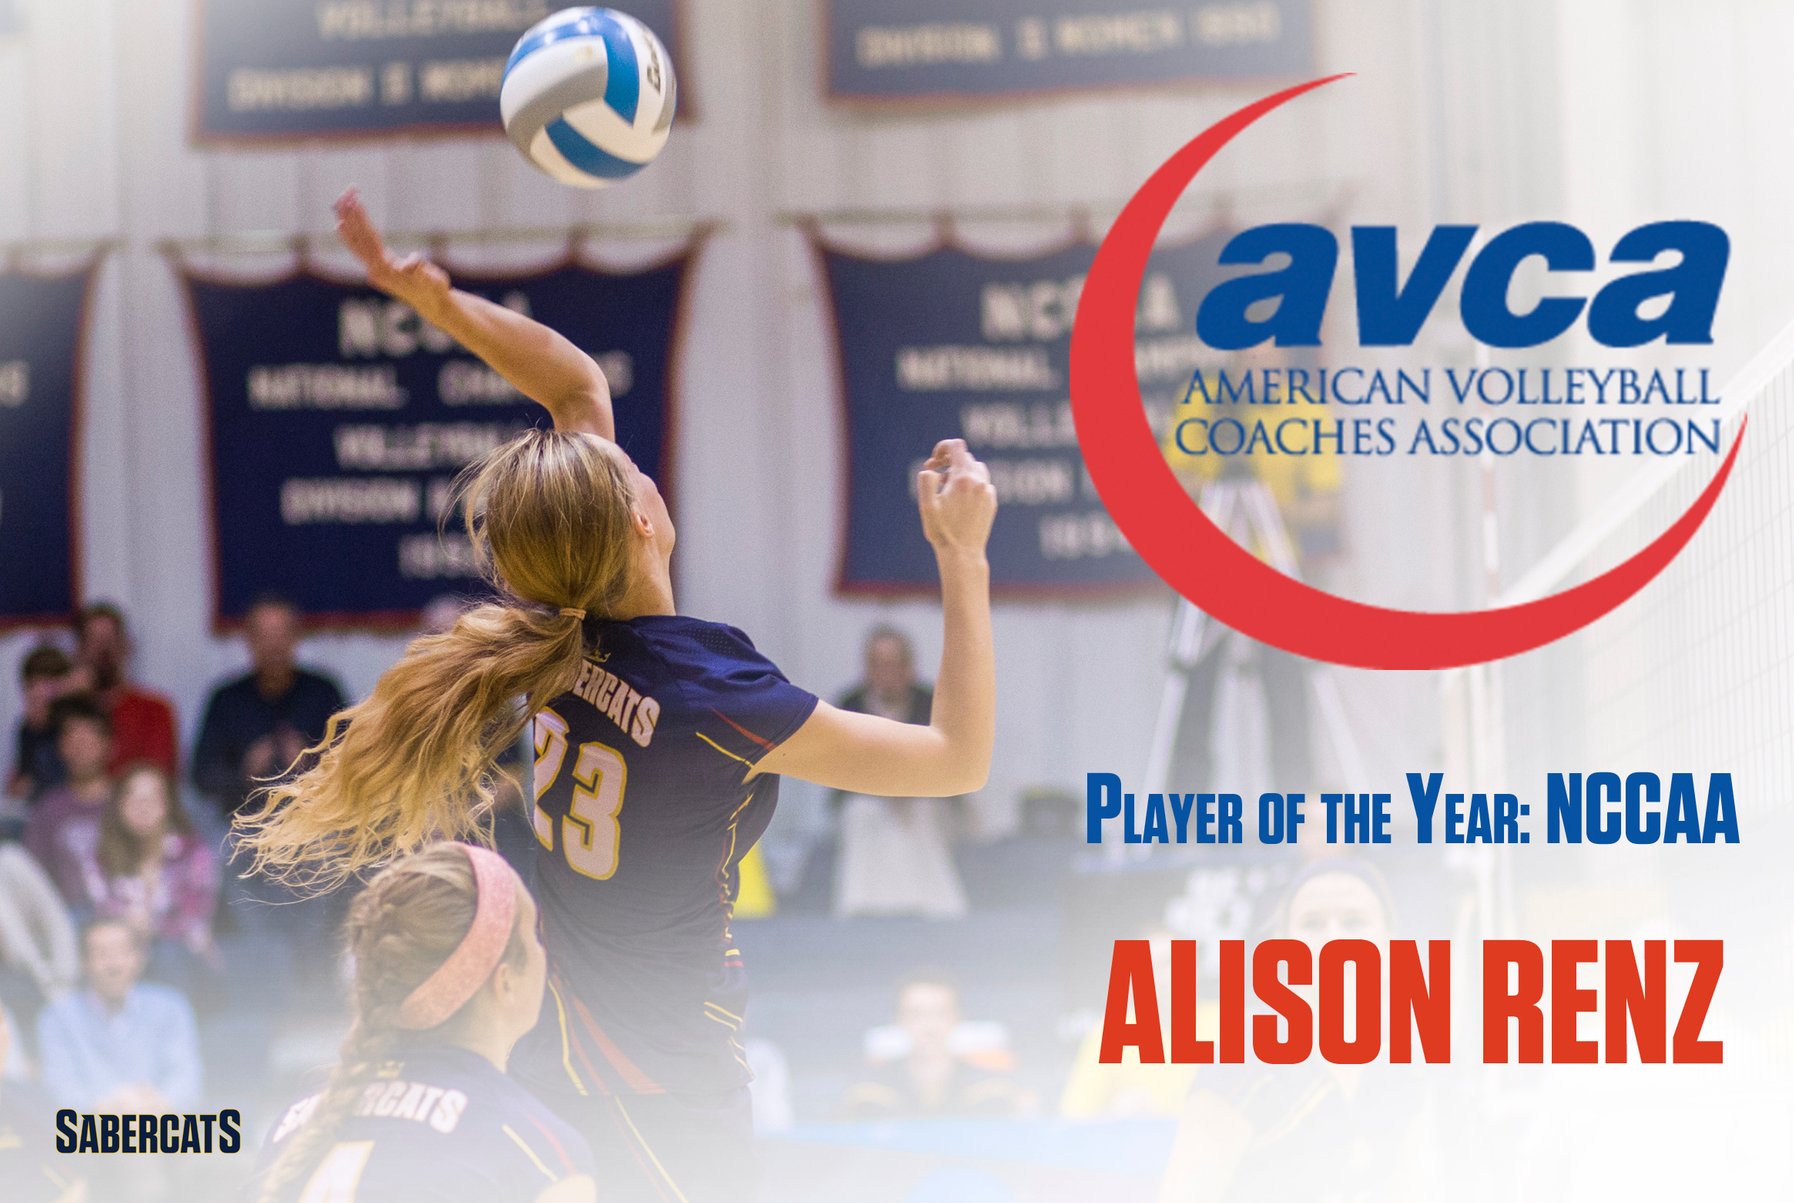 Renz Named AVCA Player of the Year for NCCAA Volleyball